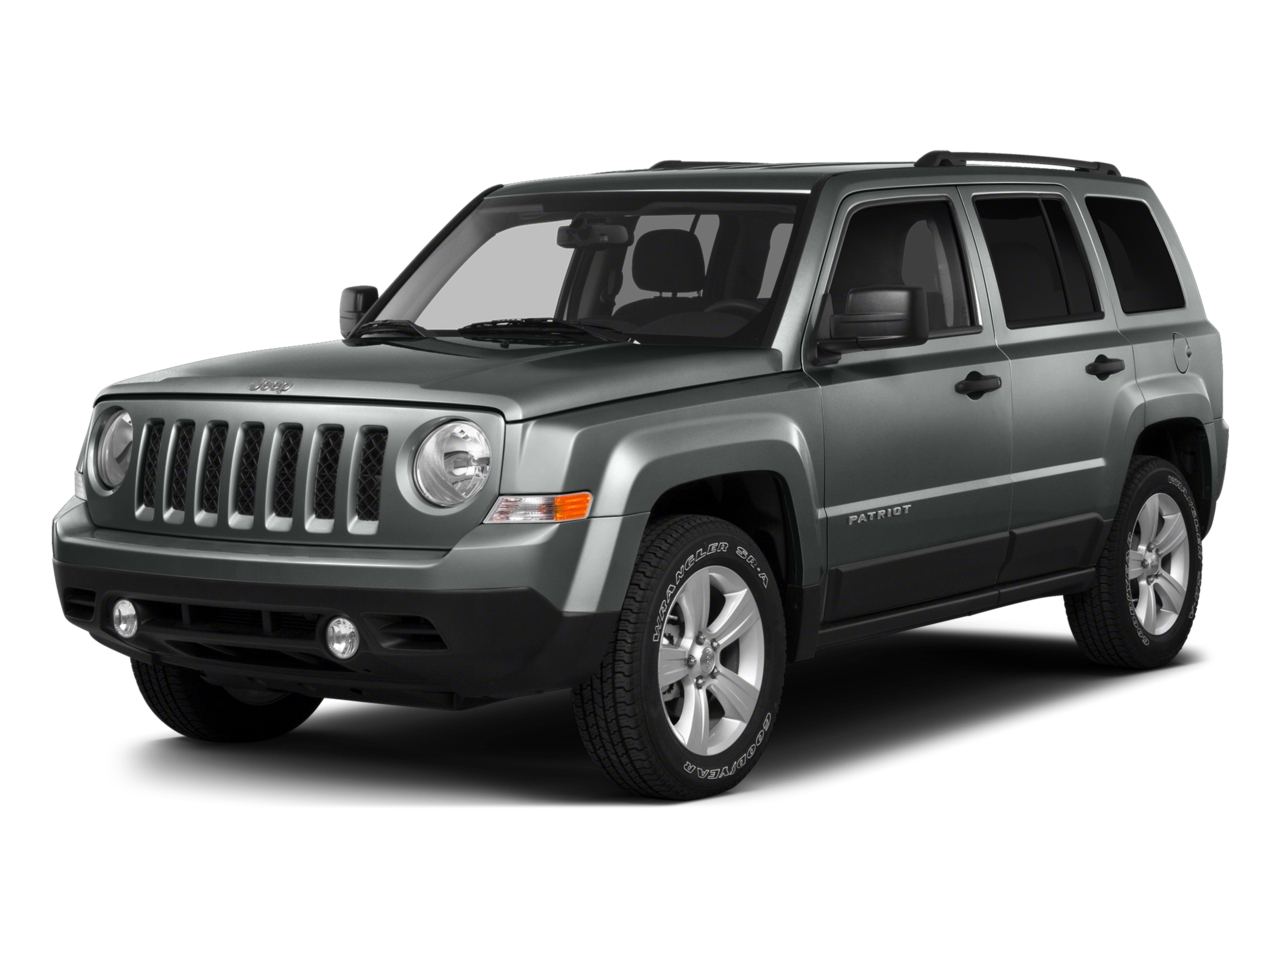 2016 jeep patriot | rothrock motor s | allentown, pa